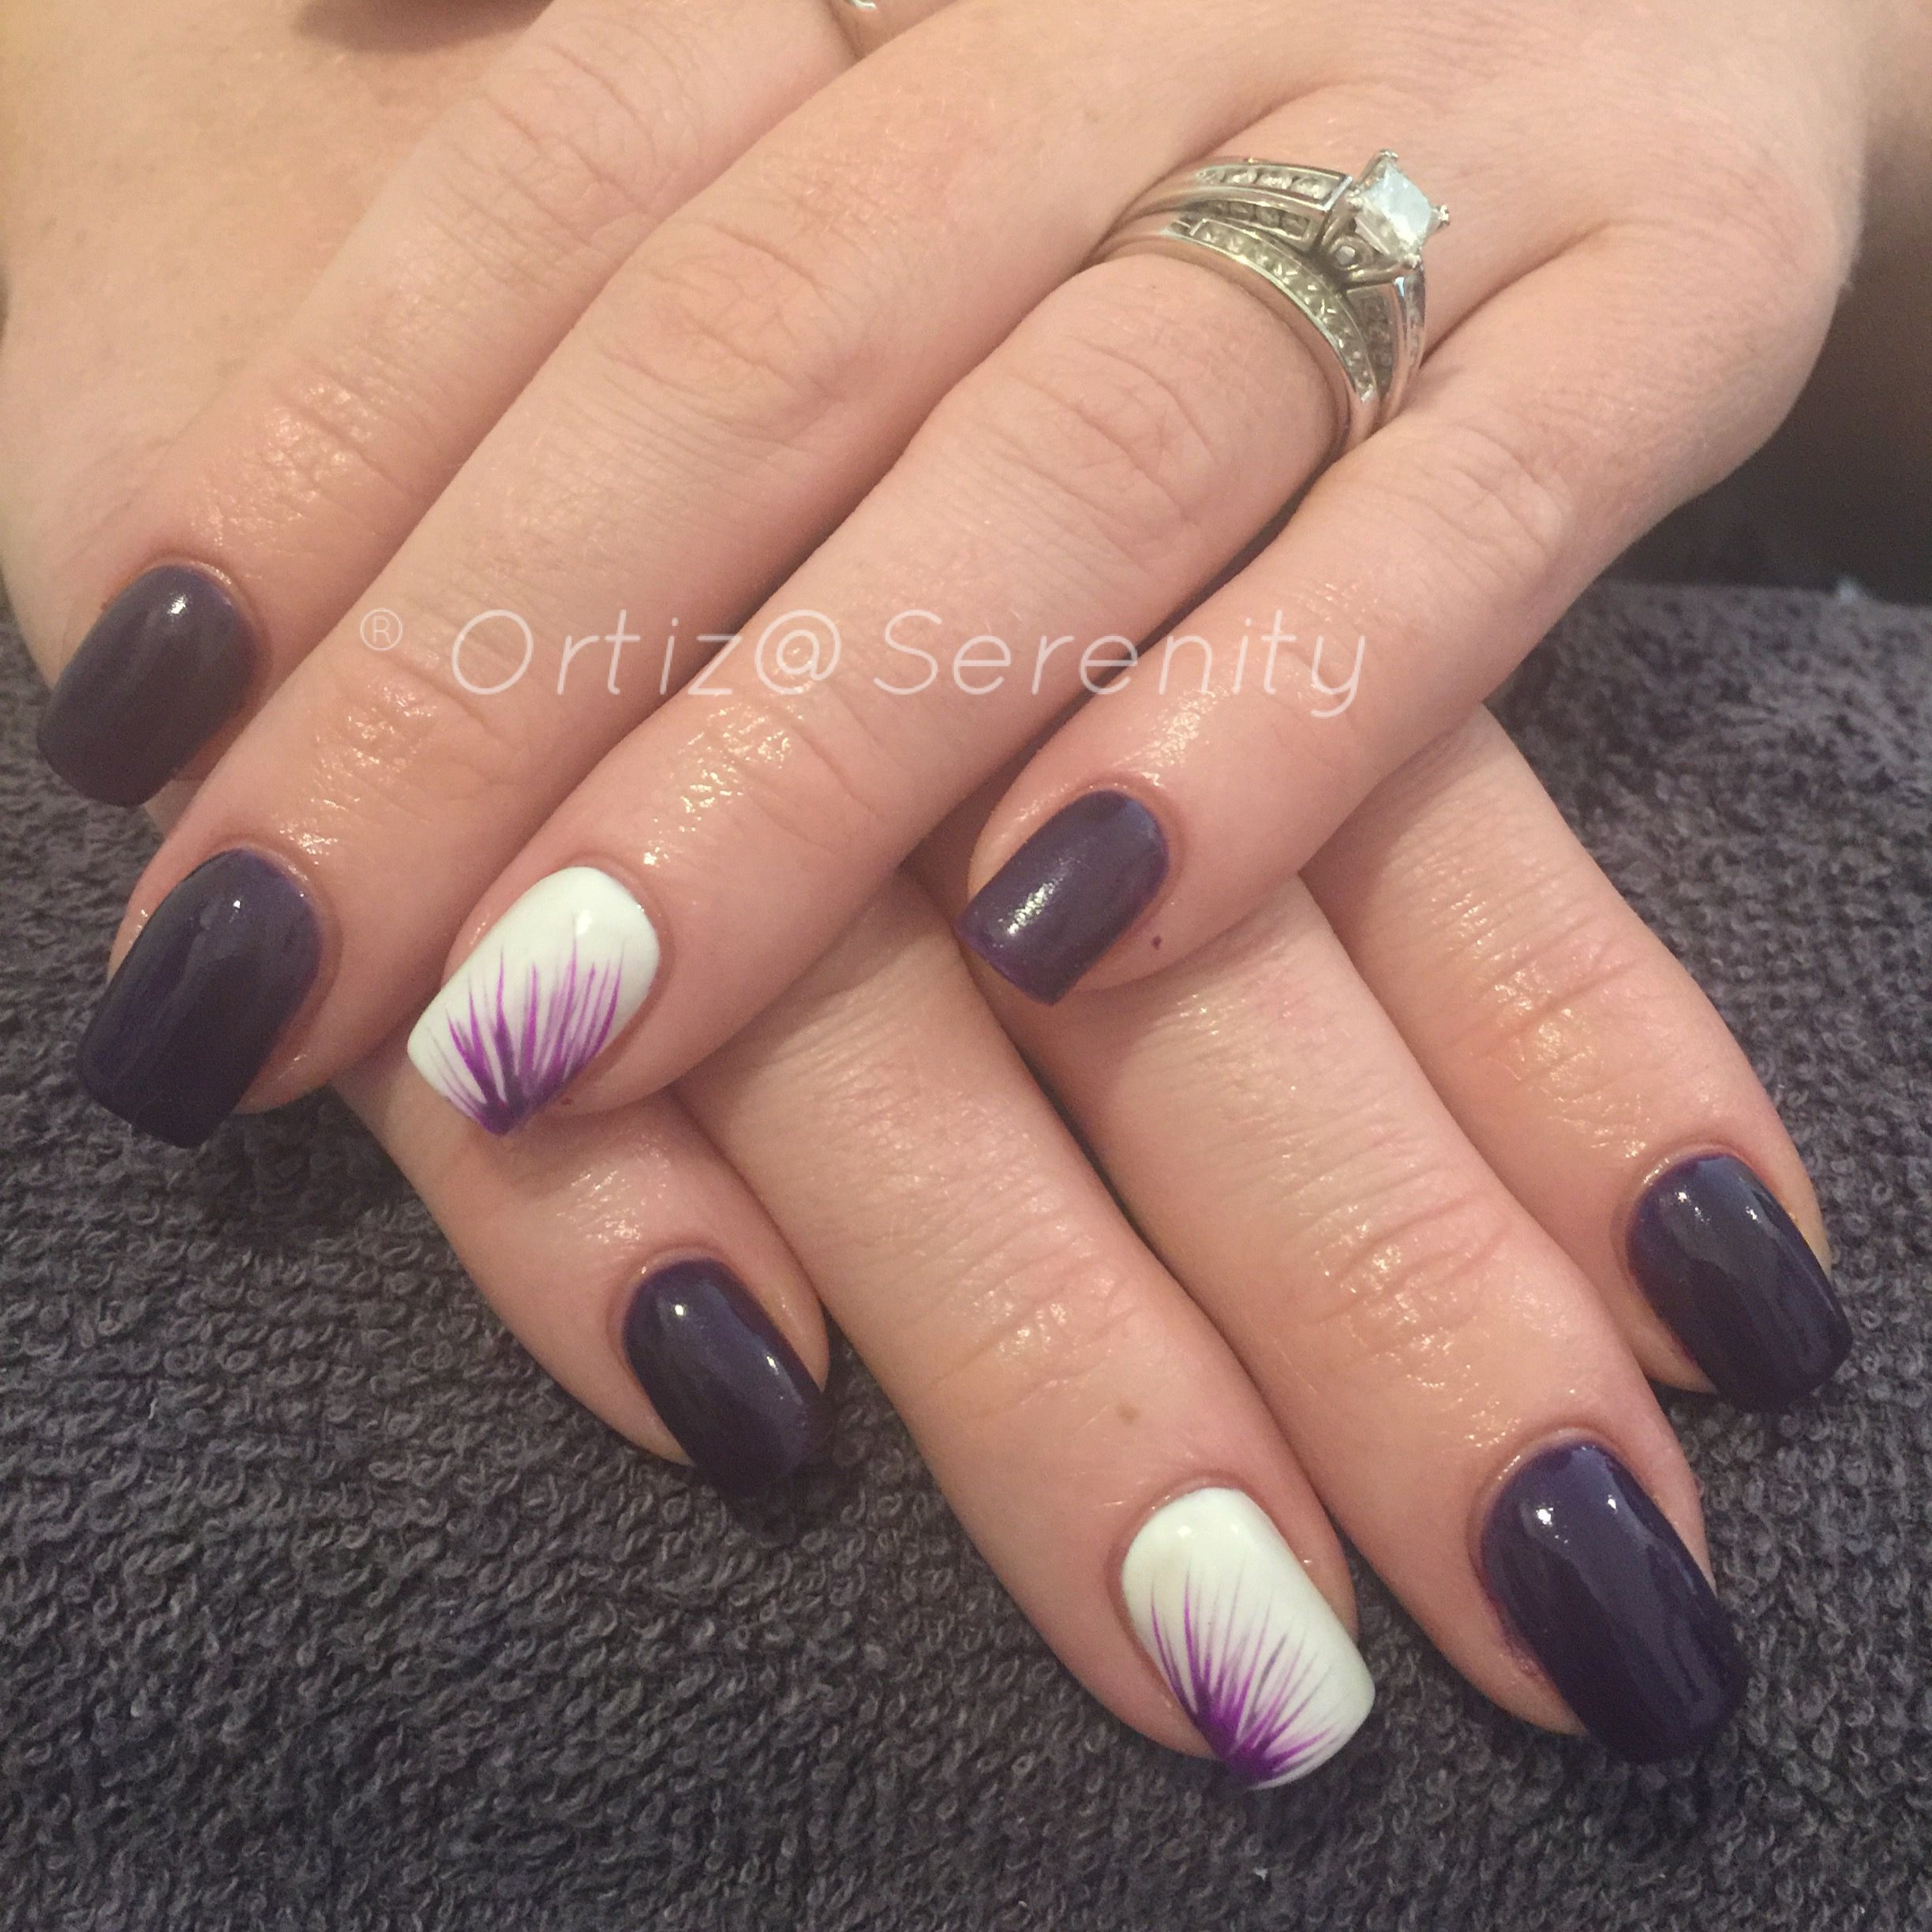 Purple and white nail design | Nail art | Pinterest | White nail ...